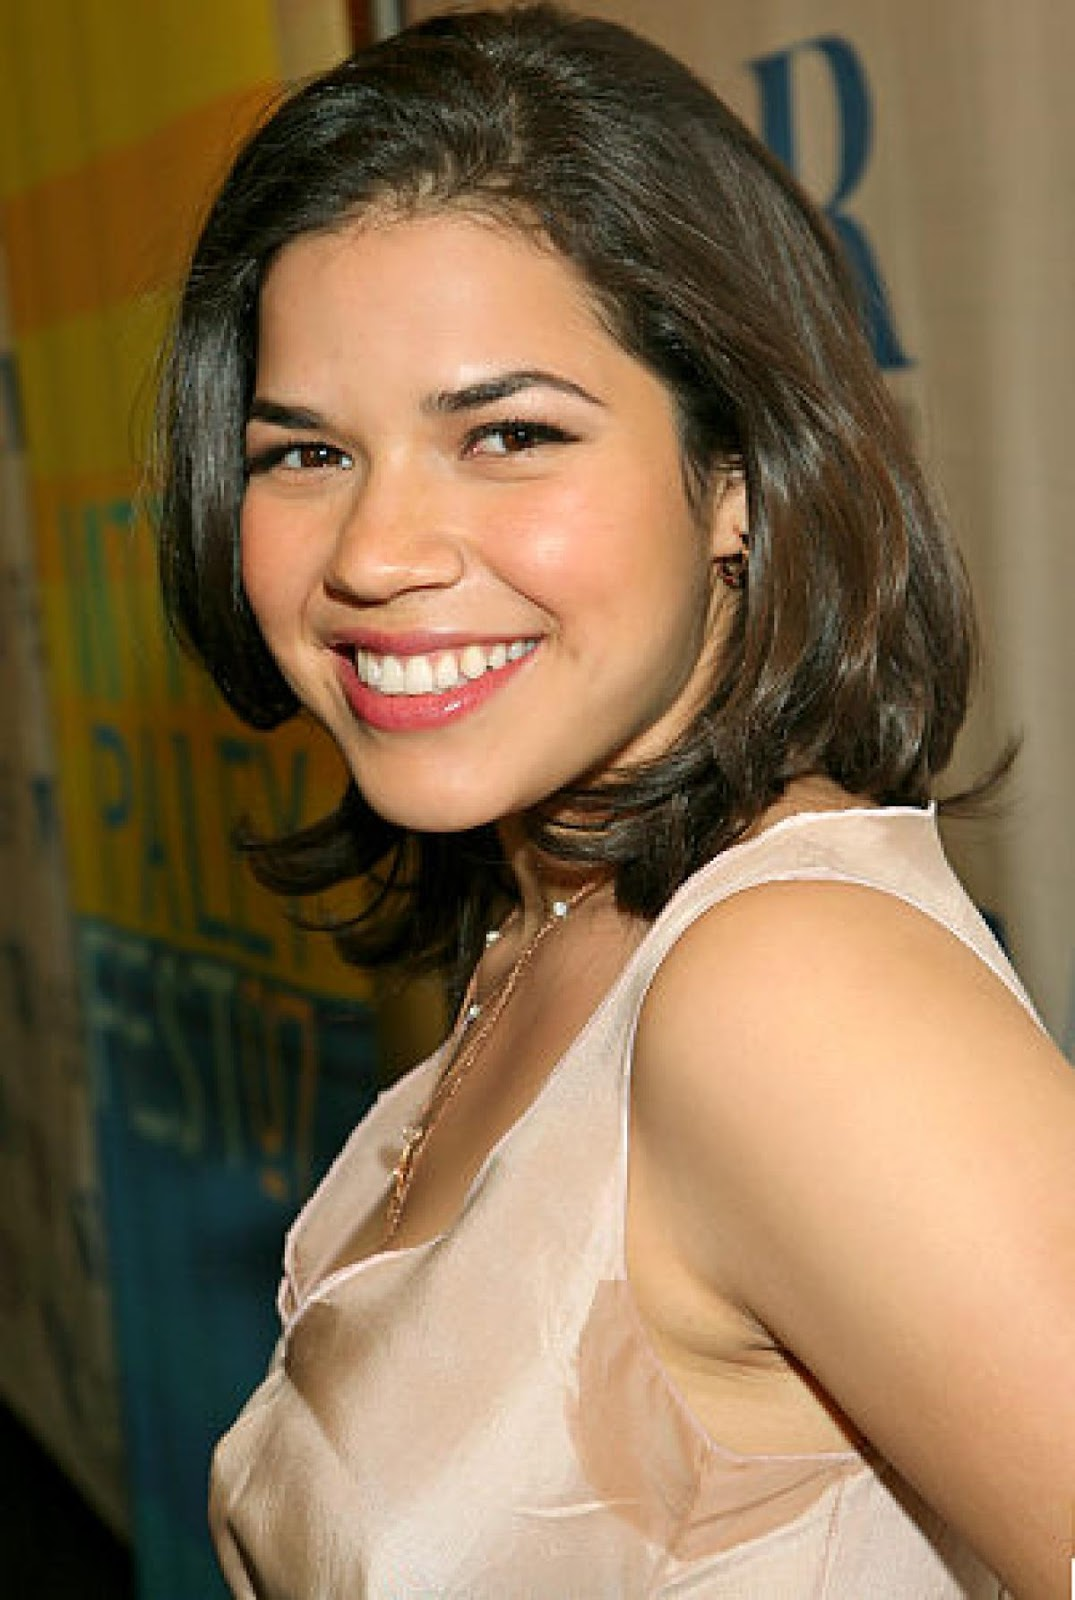 Love Ur Life Ur World America Ferrera Latest Pics Ferrera With Short Hair